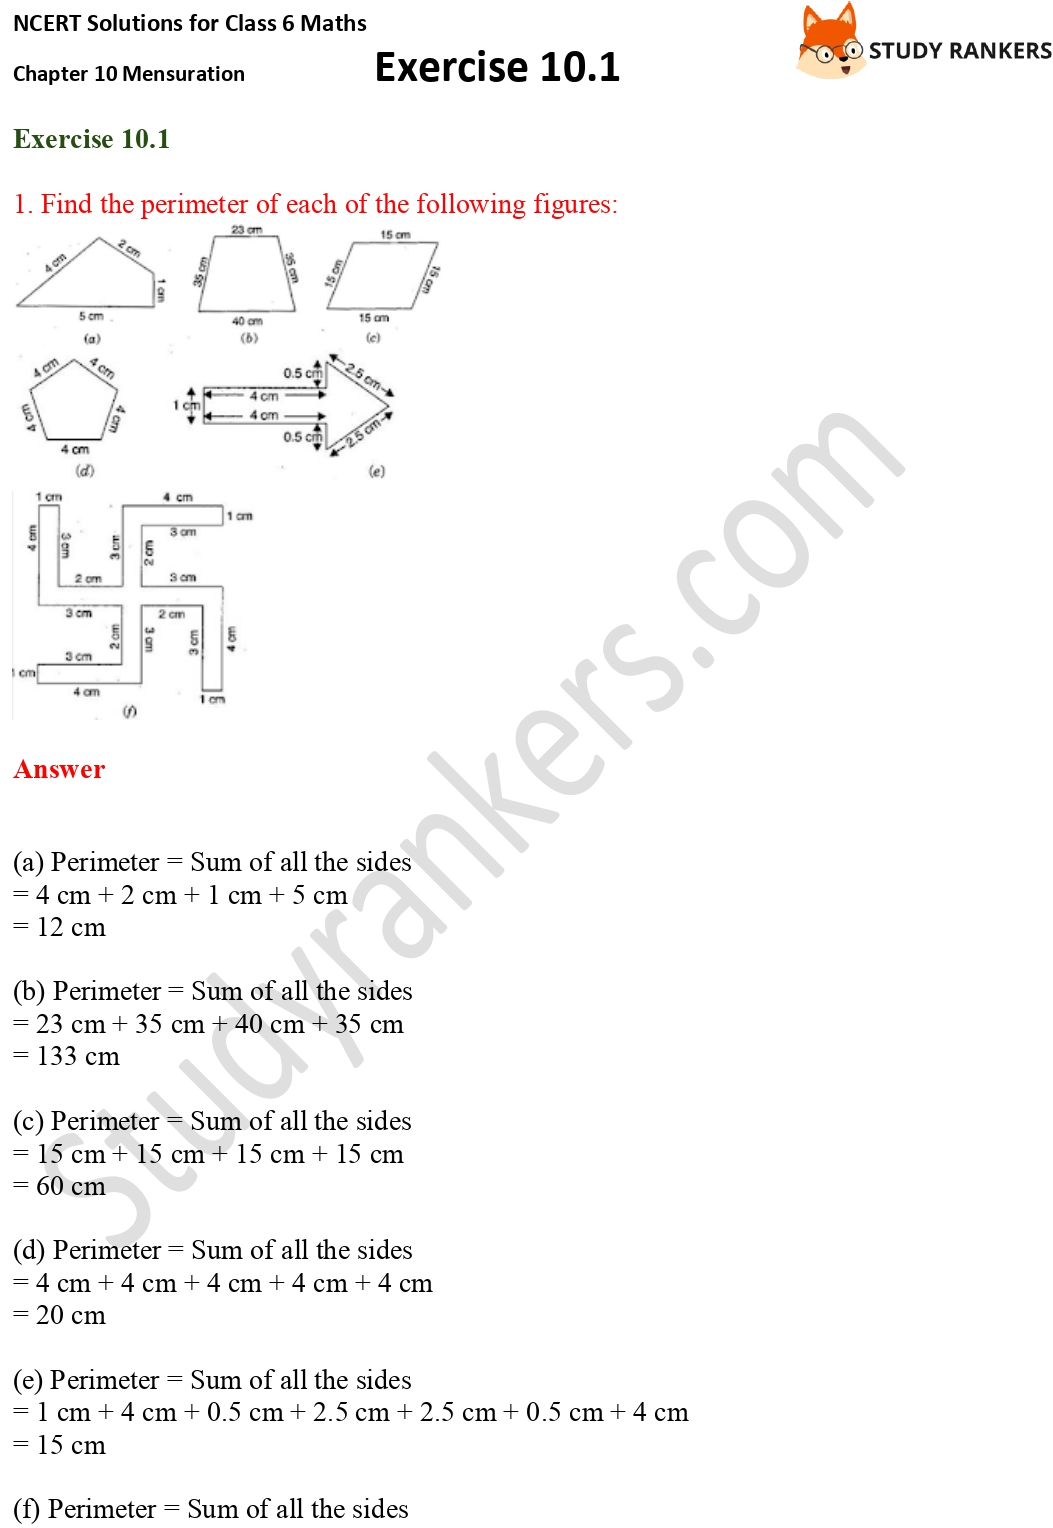 NCERT Solutions for Class 6 Maths Chapter 10 Mensuration Exercise 10.1 Part 1